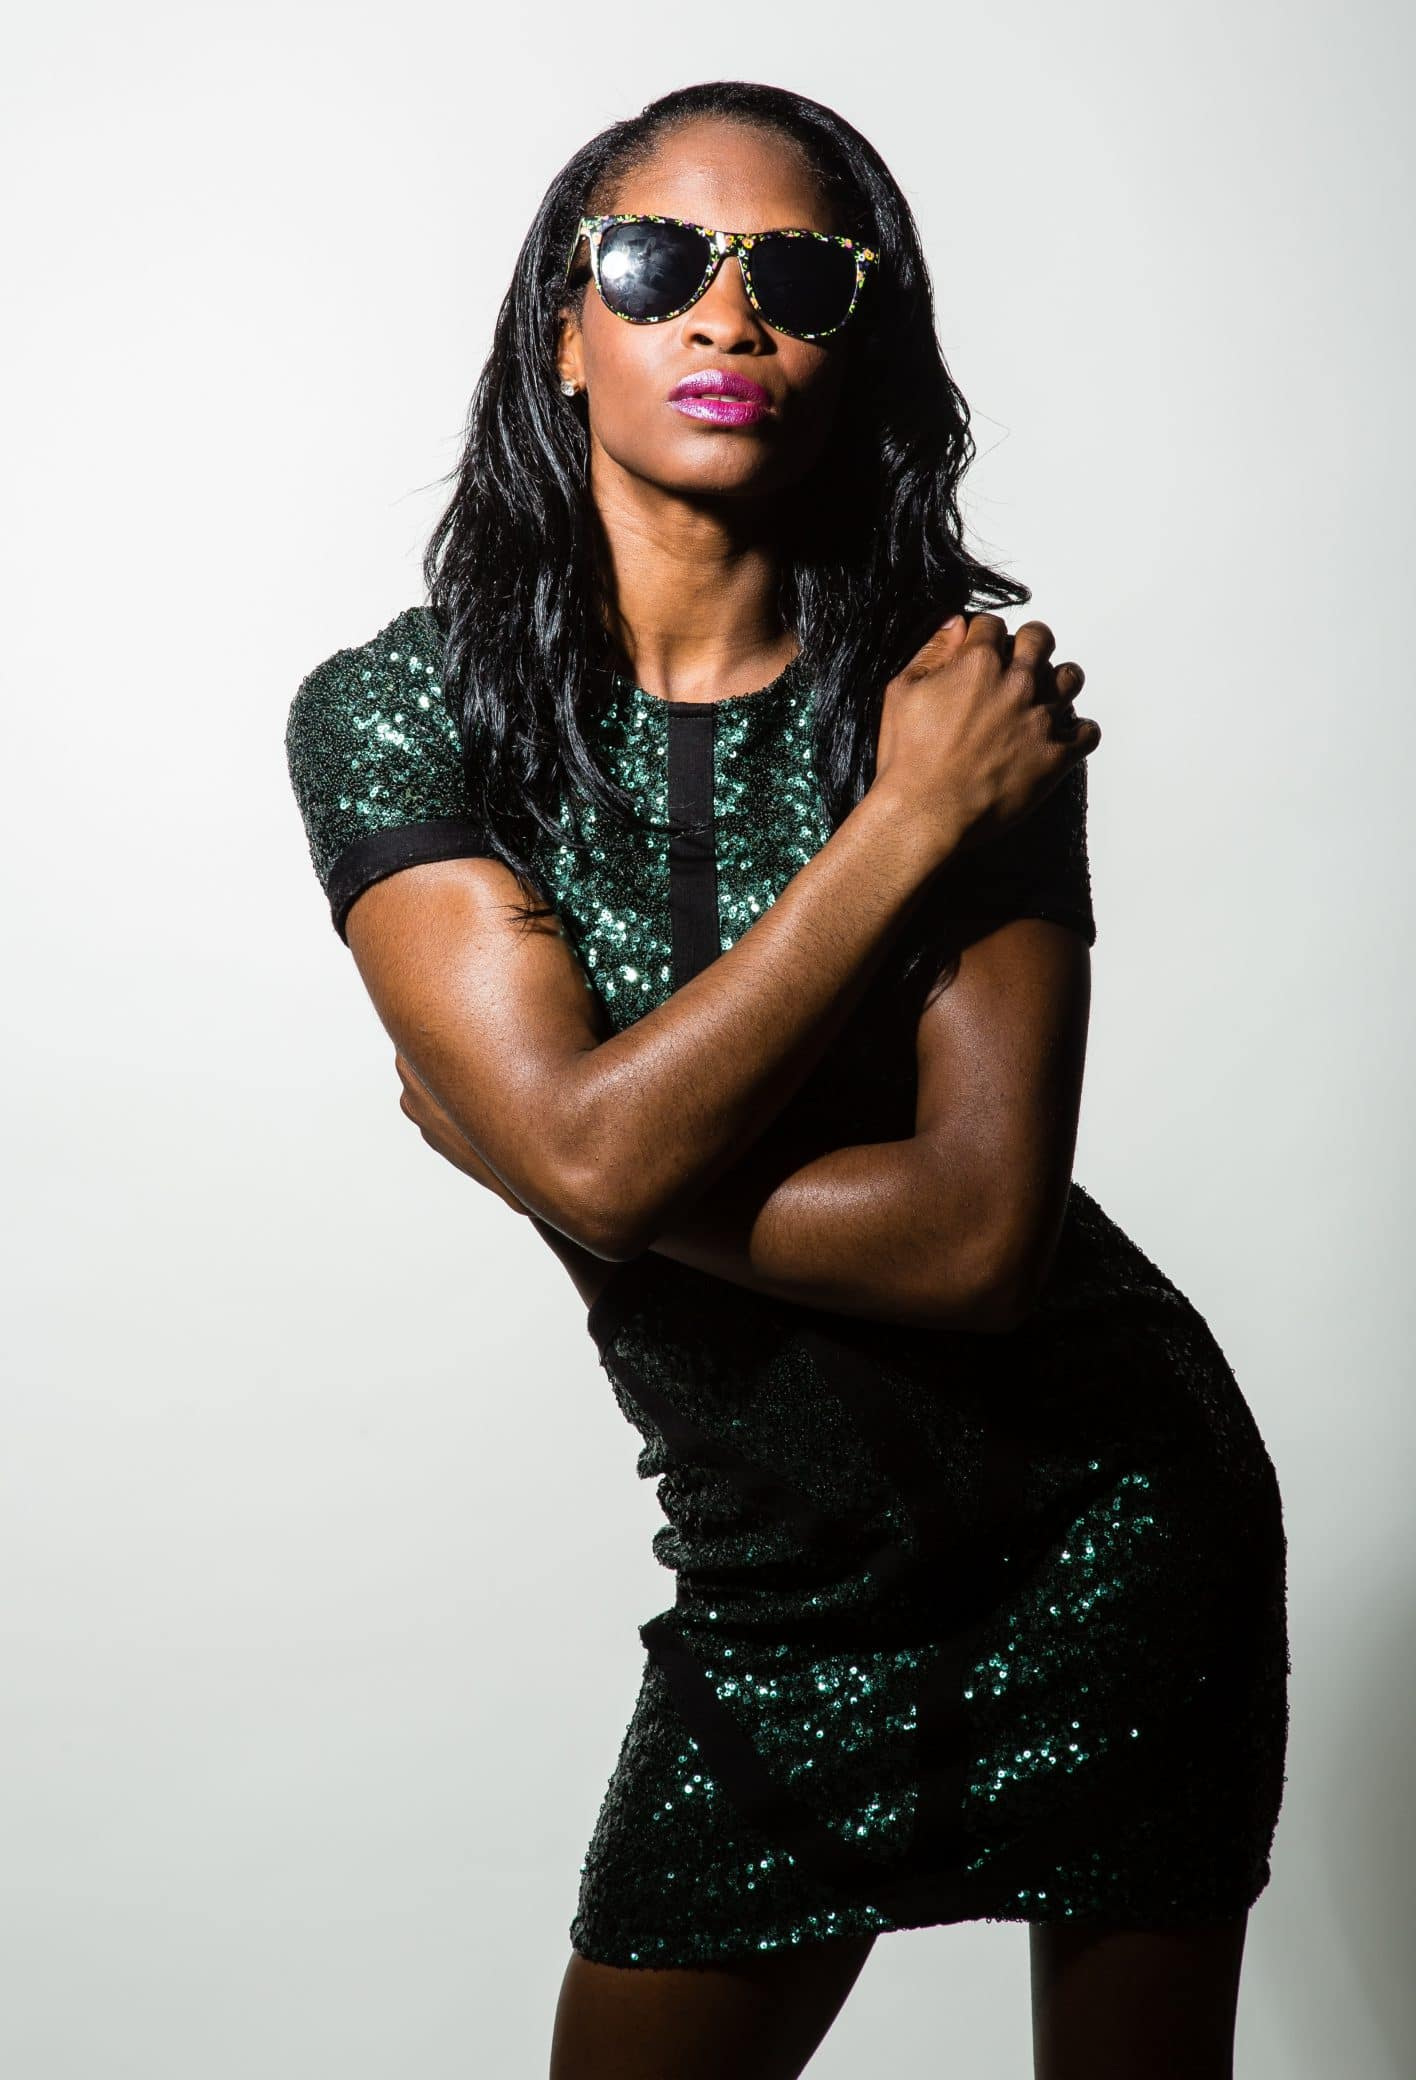 Beautiful black woman portrait wearing a tight sparkling green dress and sunglasses modelling for a studio photoshoot holding herself